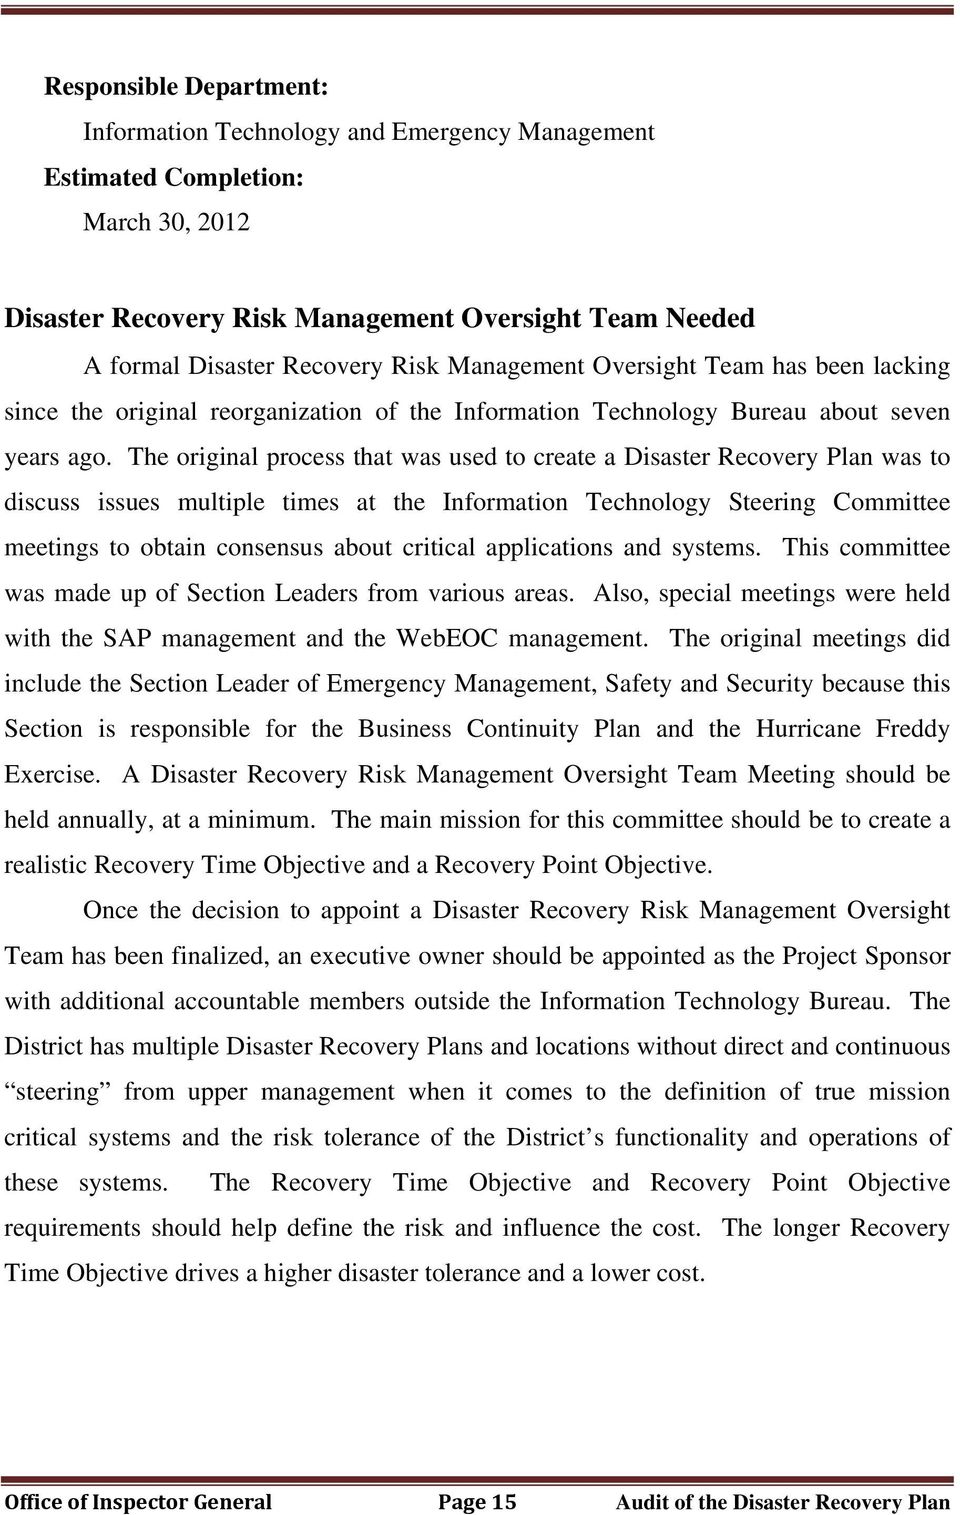 The original process that was used to create a Disaster Recovery Plan was to discuss issues multiple times at the Information Technology Steering Committee meetings to obtain consensus about critical